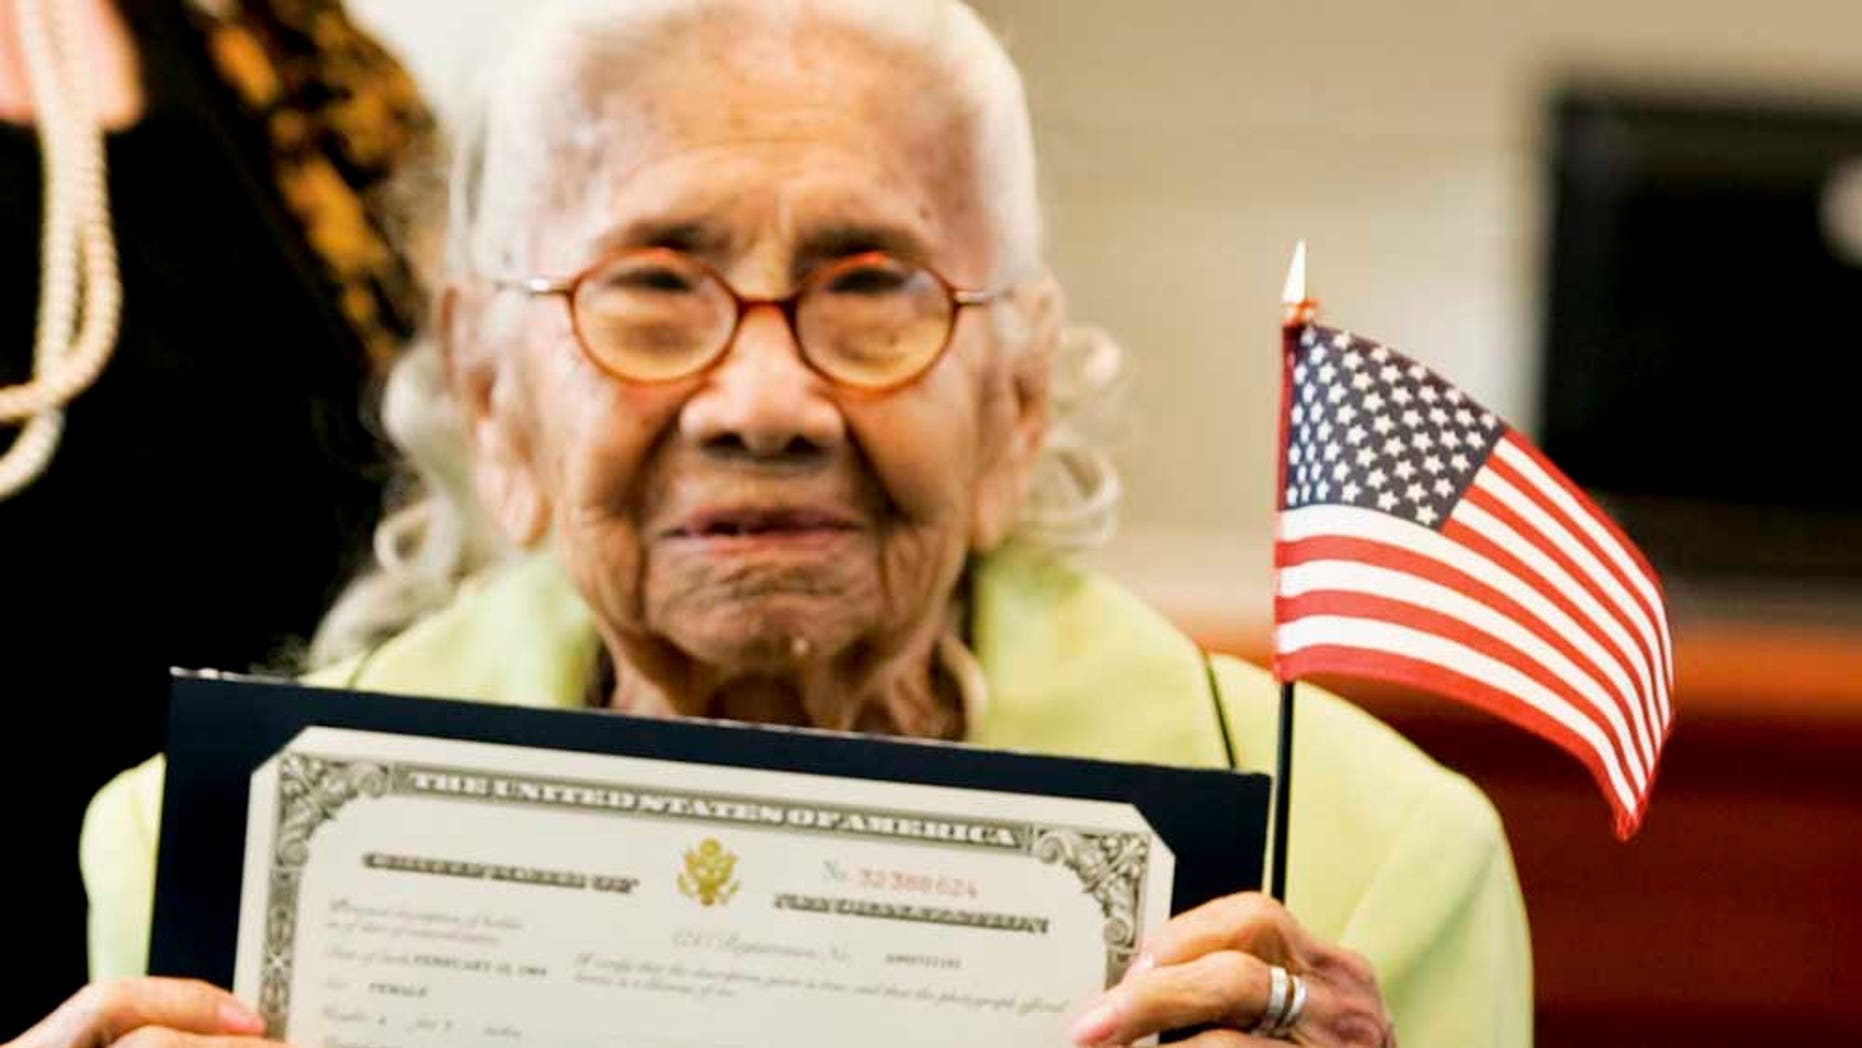 Eulalia Garcia-Maturey, 101, poses with her certificate of naturalization after her naturalization ceremony in Brownsville, Texas, Tuesday, Oct. 12, 2010. Garcia-Maturey became a naturalized U.S. citizen on Tuesday, exactly 101 years after arriving in the U.S. with her parents from Mexico. (AP Photo/The Brownsville Herald, Yvette Vela)